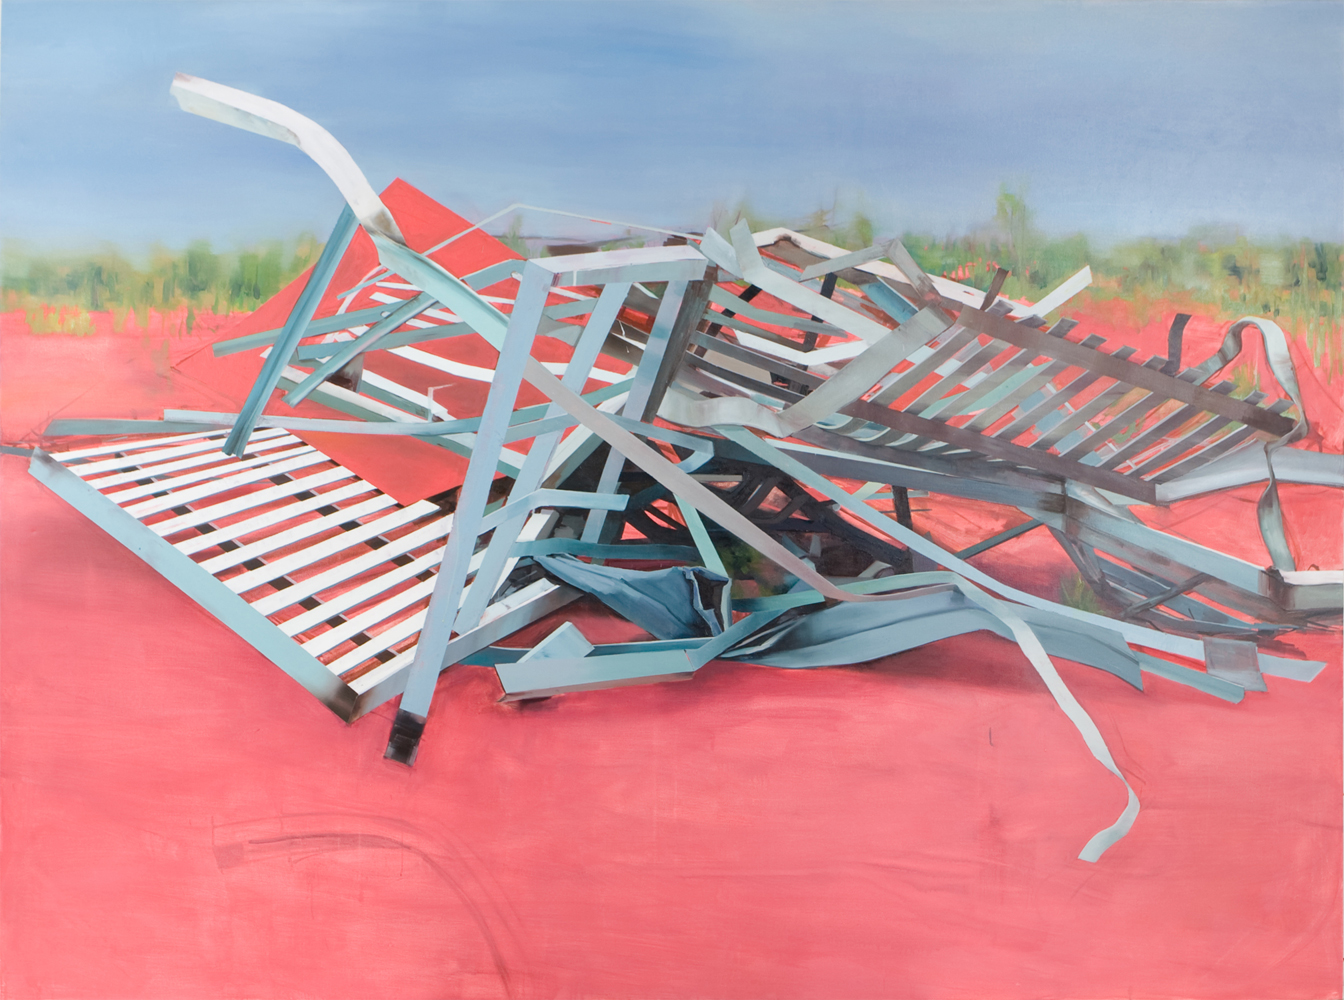 Thuy-Van Vu, Fragments (Barbara Place, Jersey City), 2008, oil on canvas, 72 x 96 inches, price on request